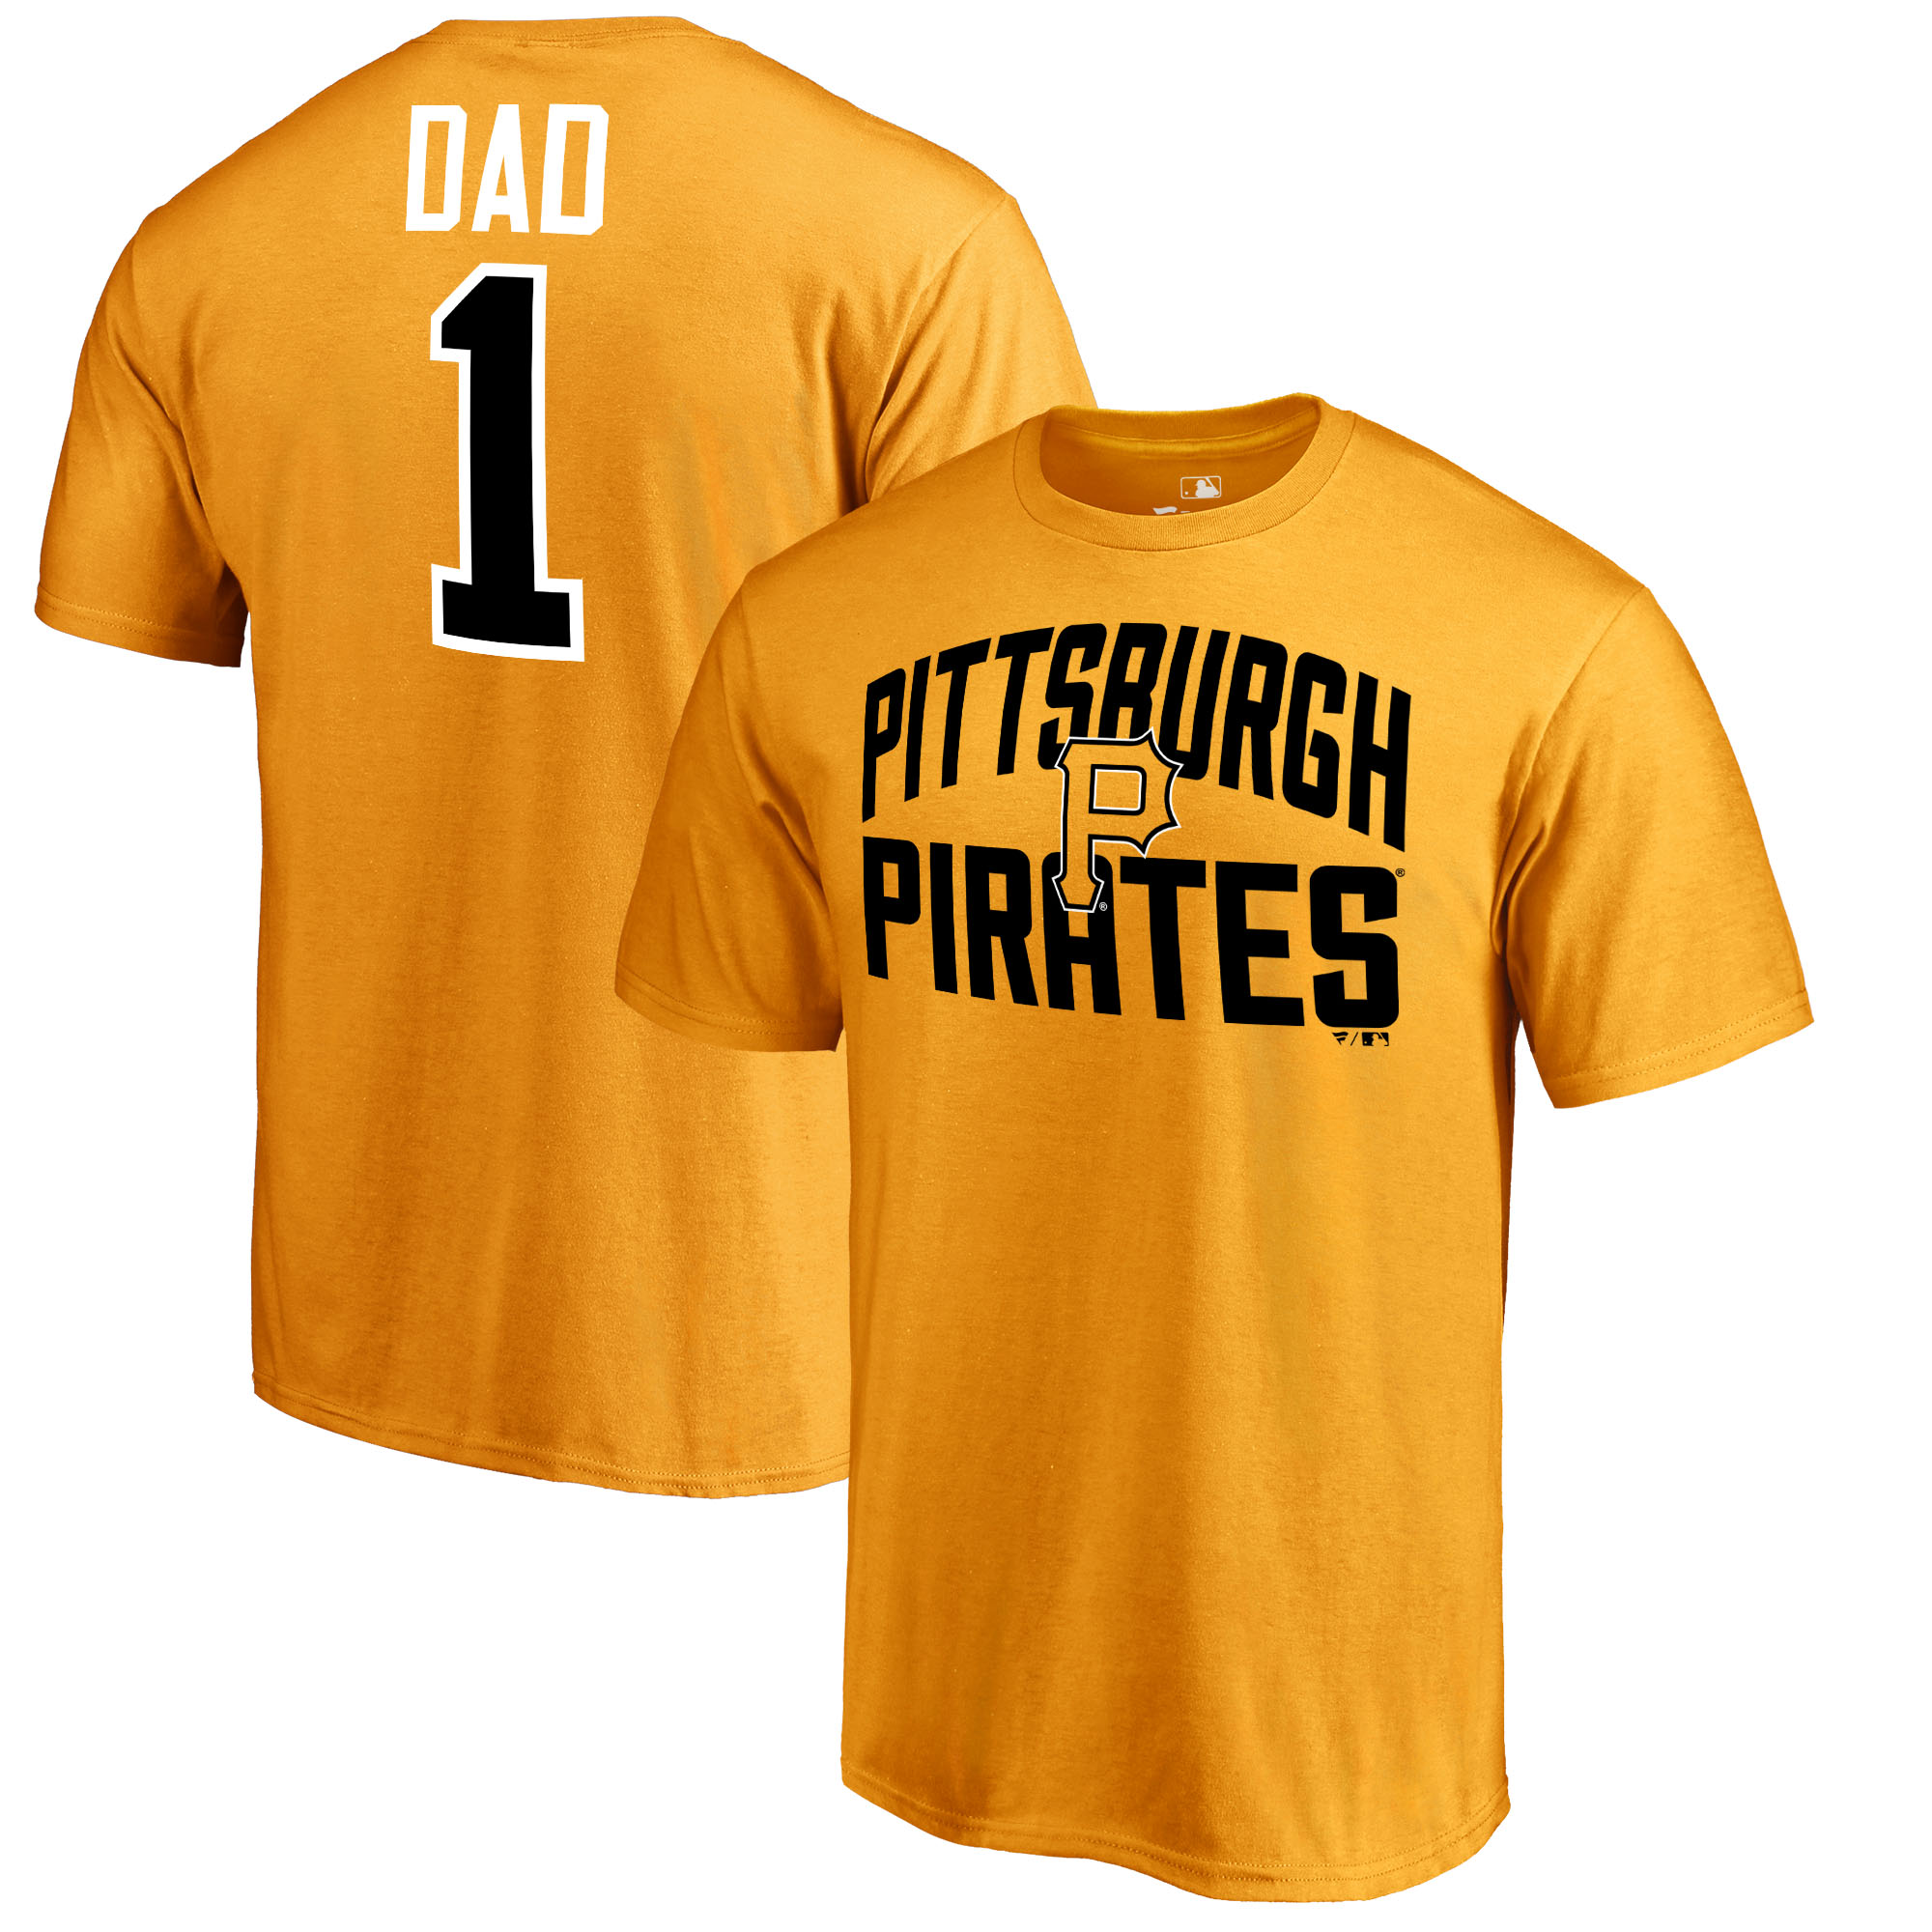 Pittsburgh Pirates Fanatics Branded 2018 Father's Day Number 1 Dad T-Shirt - Gold